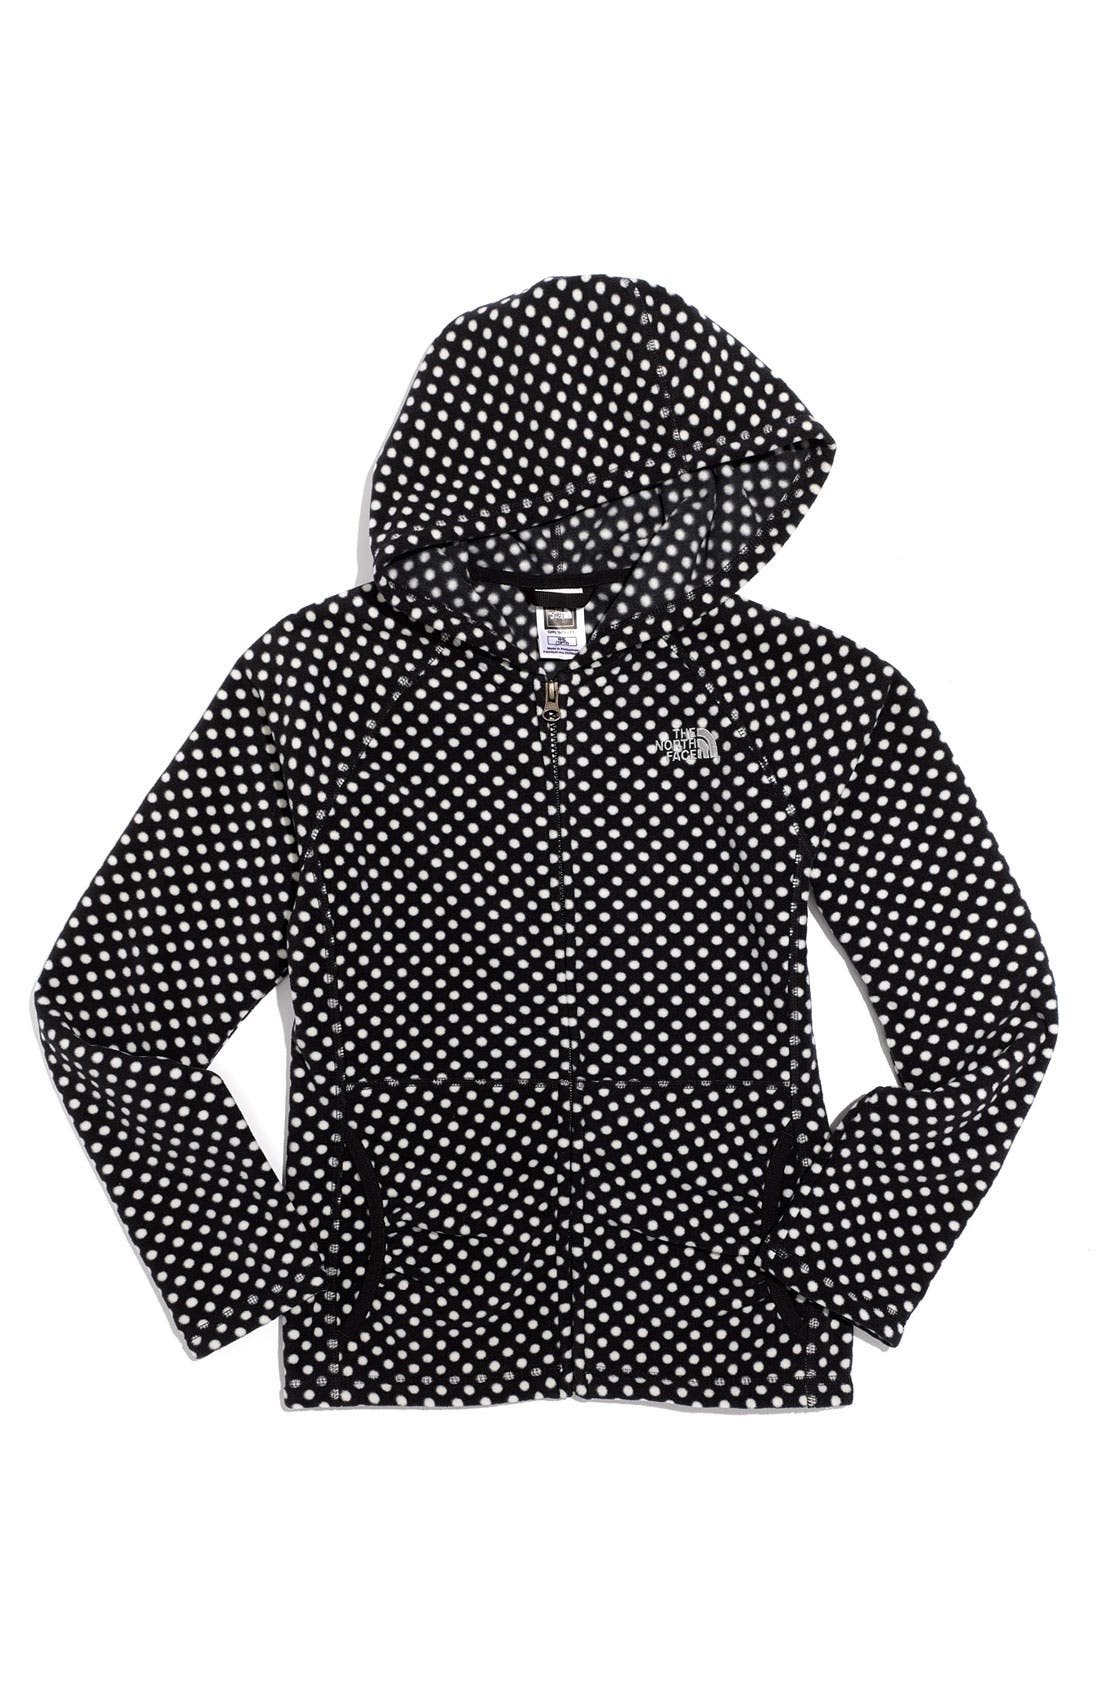 Alternate Image 1 Selected - The North Face 'Dottie Glacier' Hoodie (Big Girls)